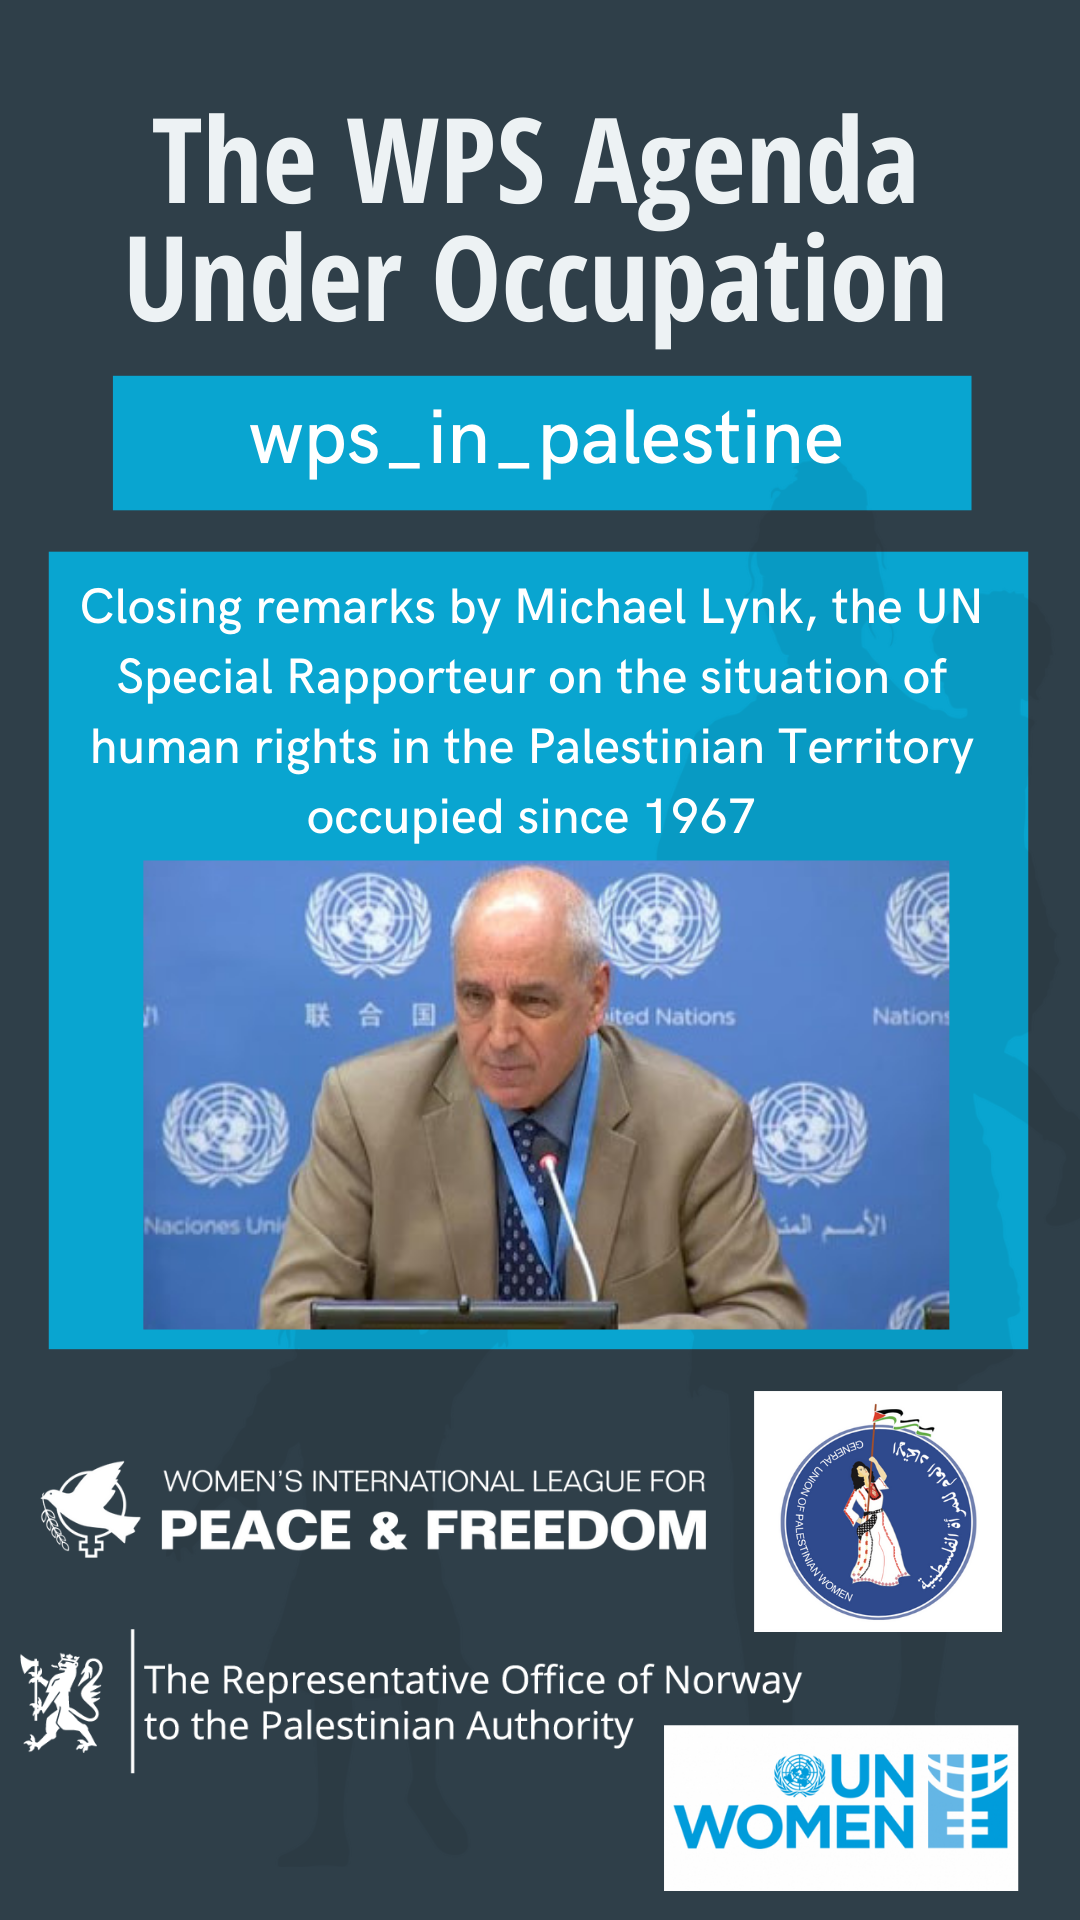 Michael Lynk, UN Special Rapporteur on human rights in the Palestinian Territory